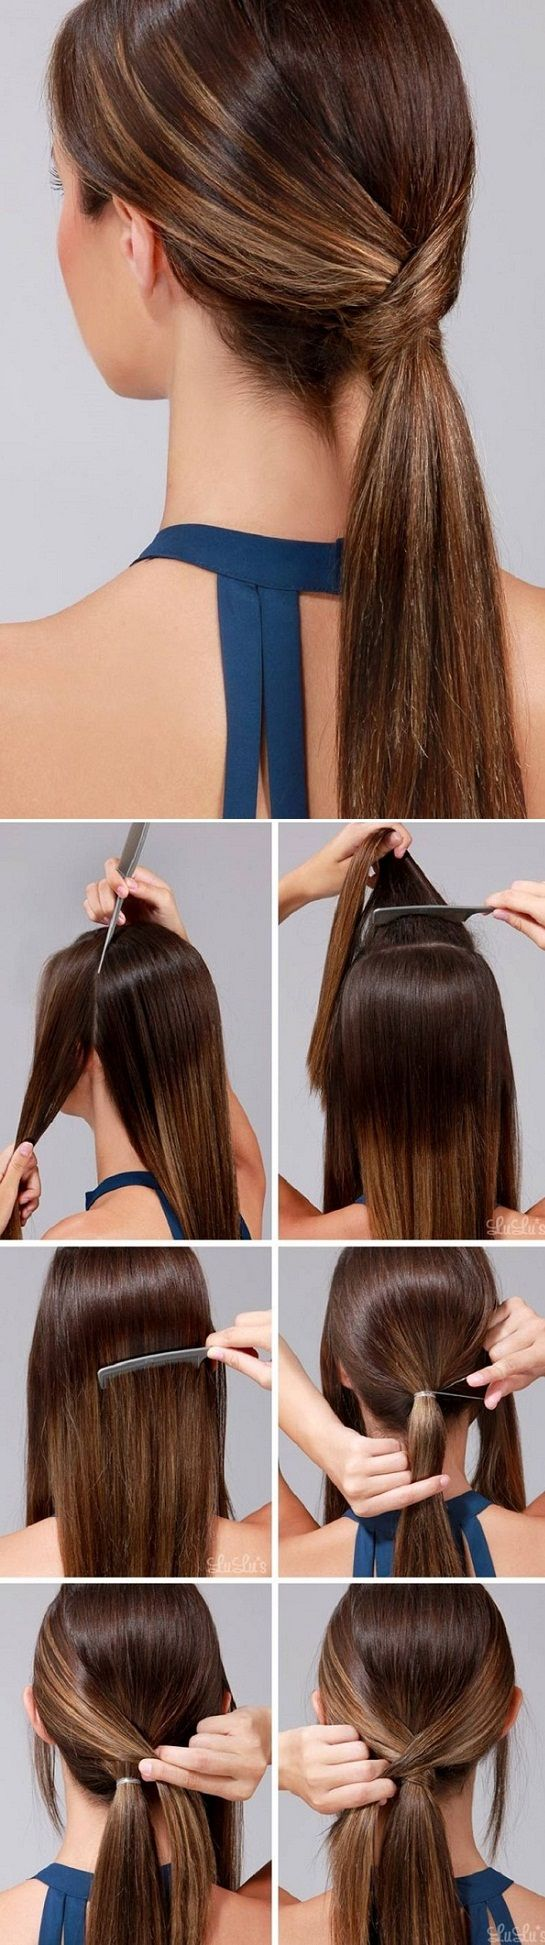 how to make hair look thinner in a ponytail